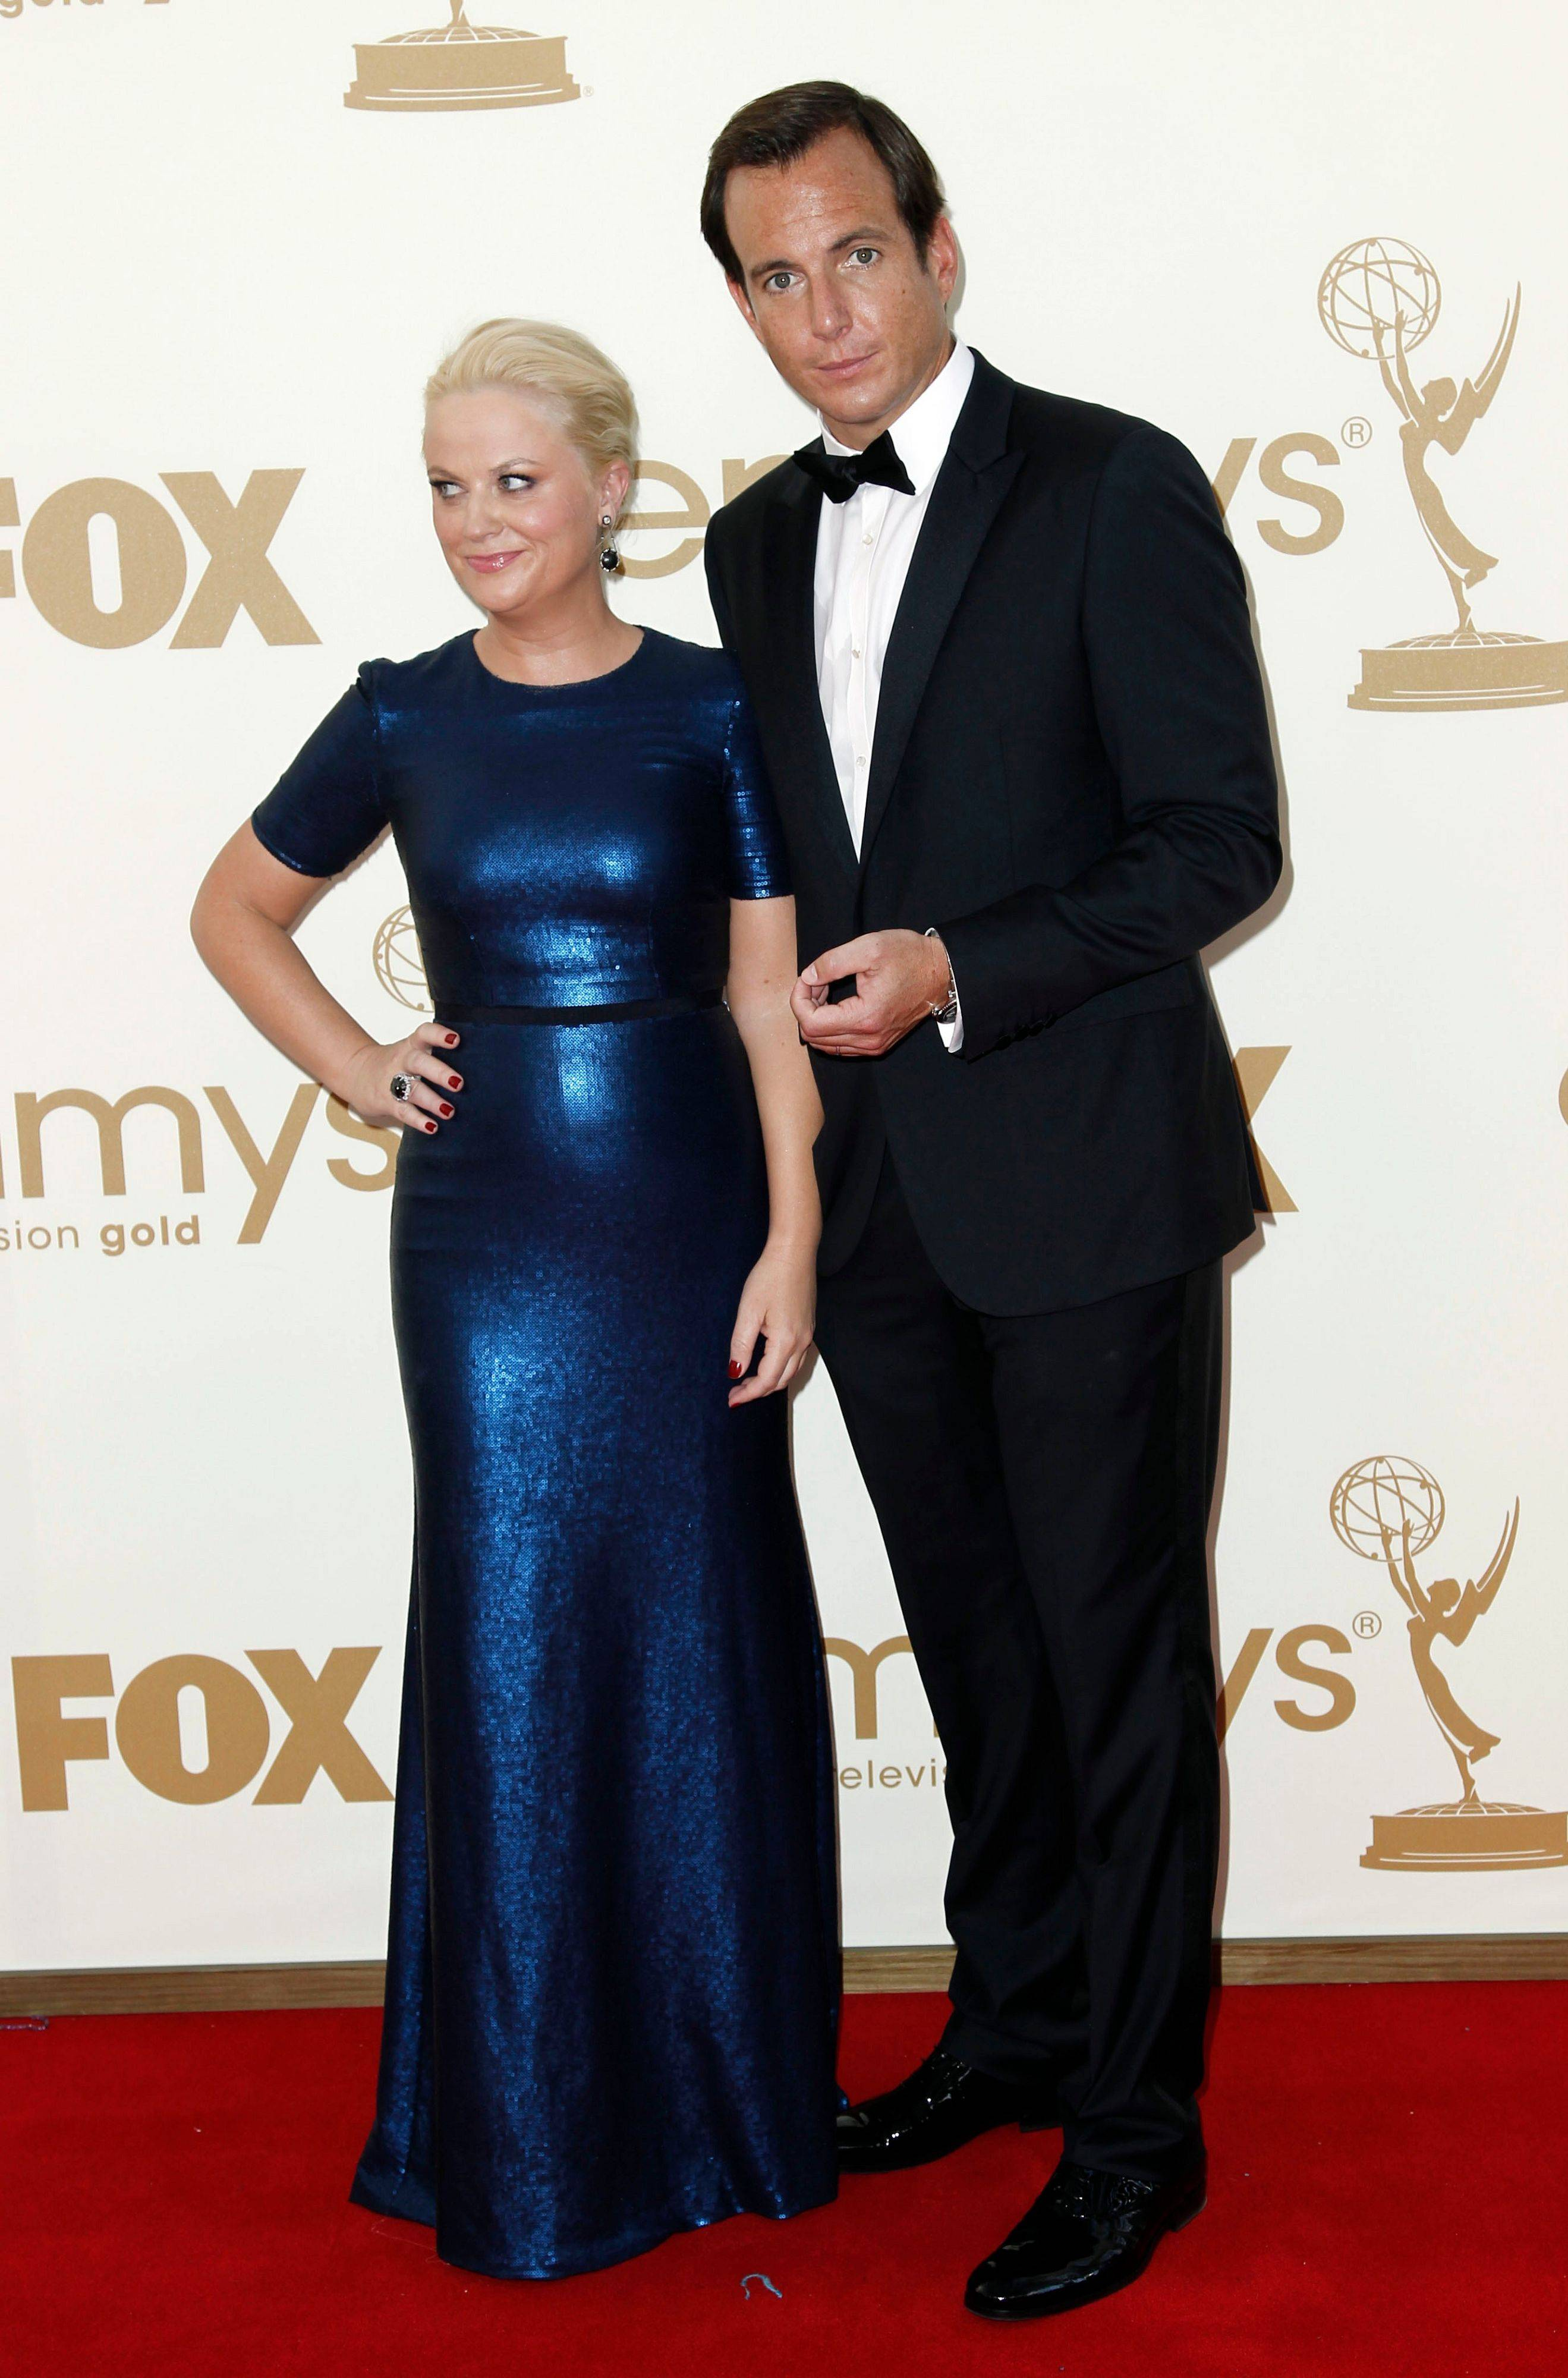 """Parks and Rec"" star Amy Poehler walk the red carpet with her husband Will Arnett, who's currently starring in ""Up All Night"" with Christina Applegate."